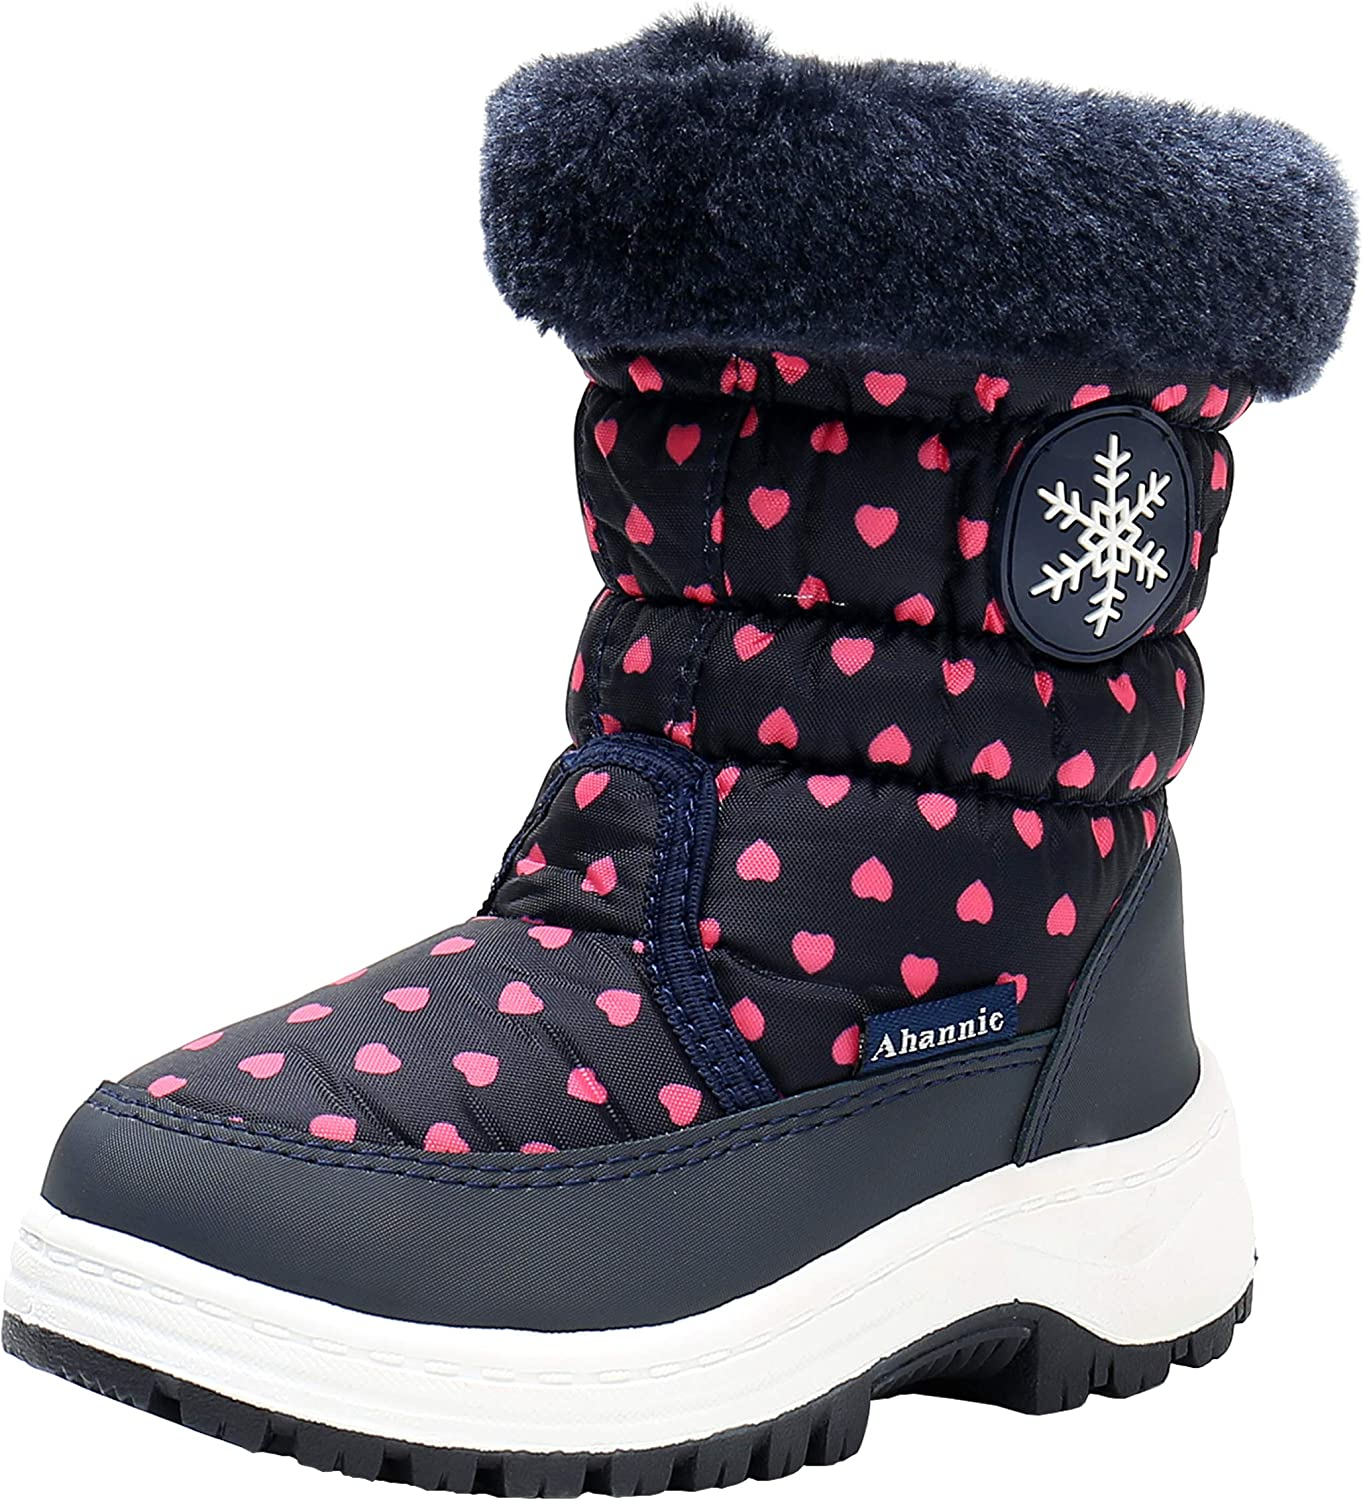 Snow Boots Mid Calf Printed Winter Warm Shoes for Boys and Girls